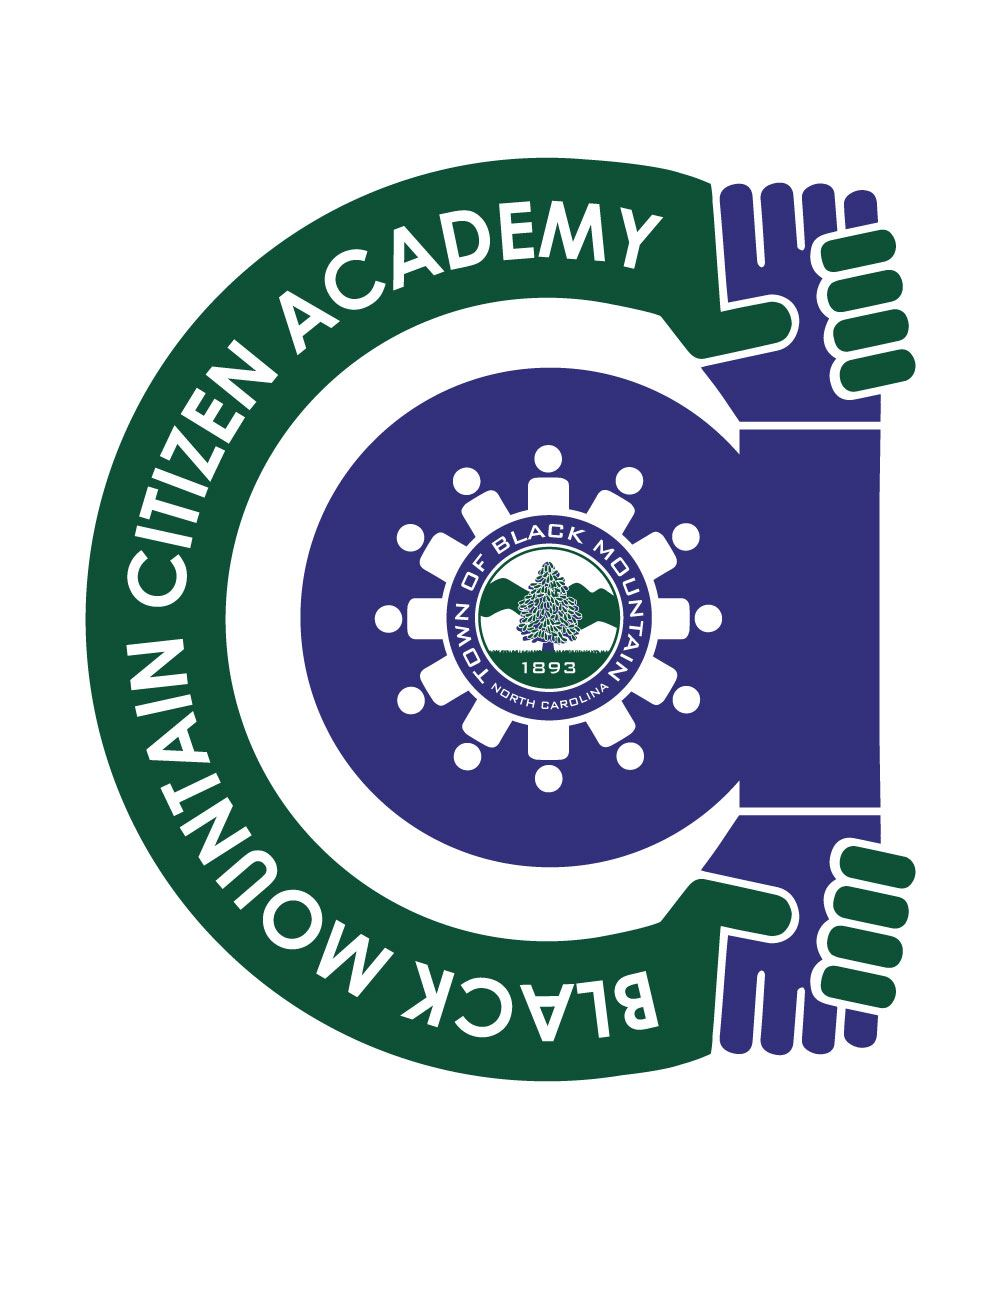 CitizensAcademyLogoJPG